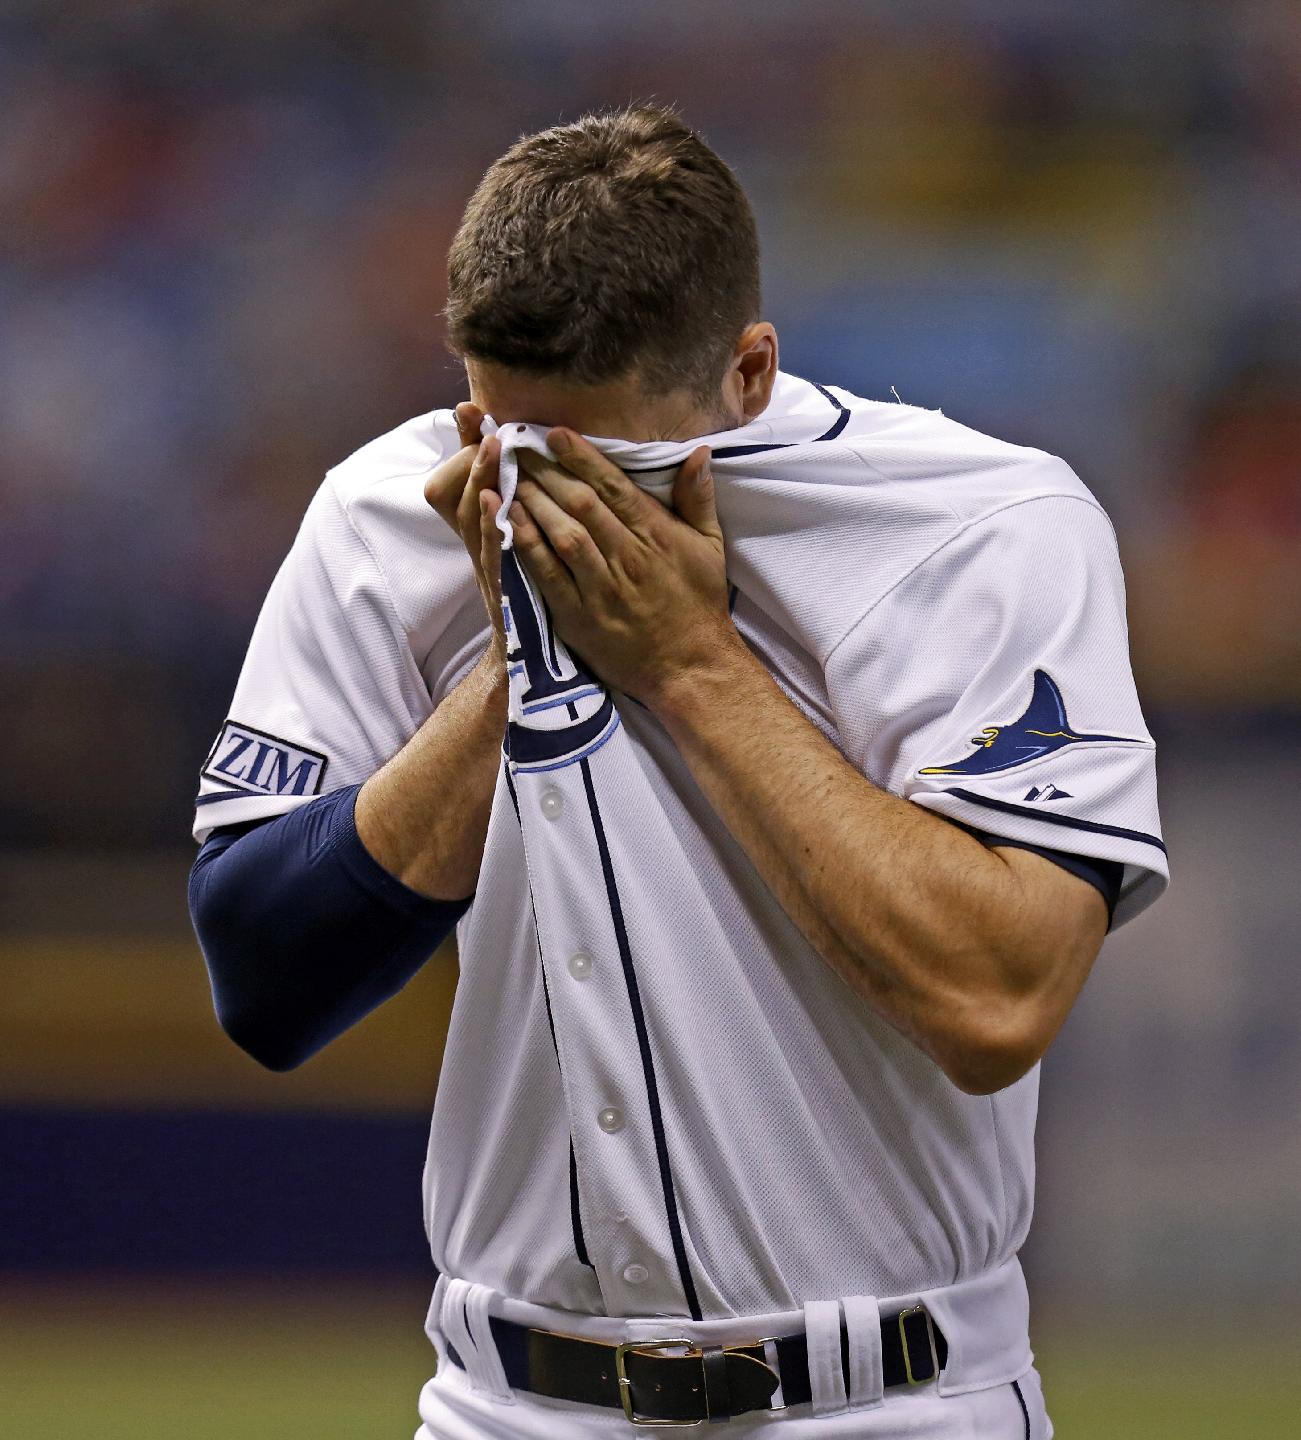 Rays haven't scored in three games and a team-record 28 innings